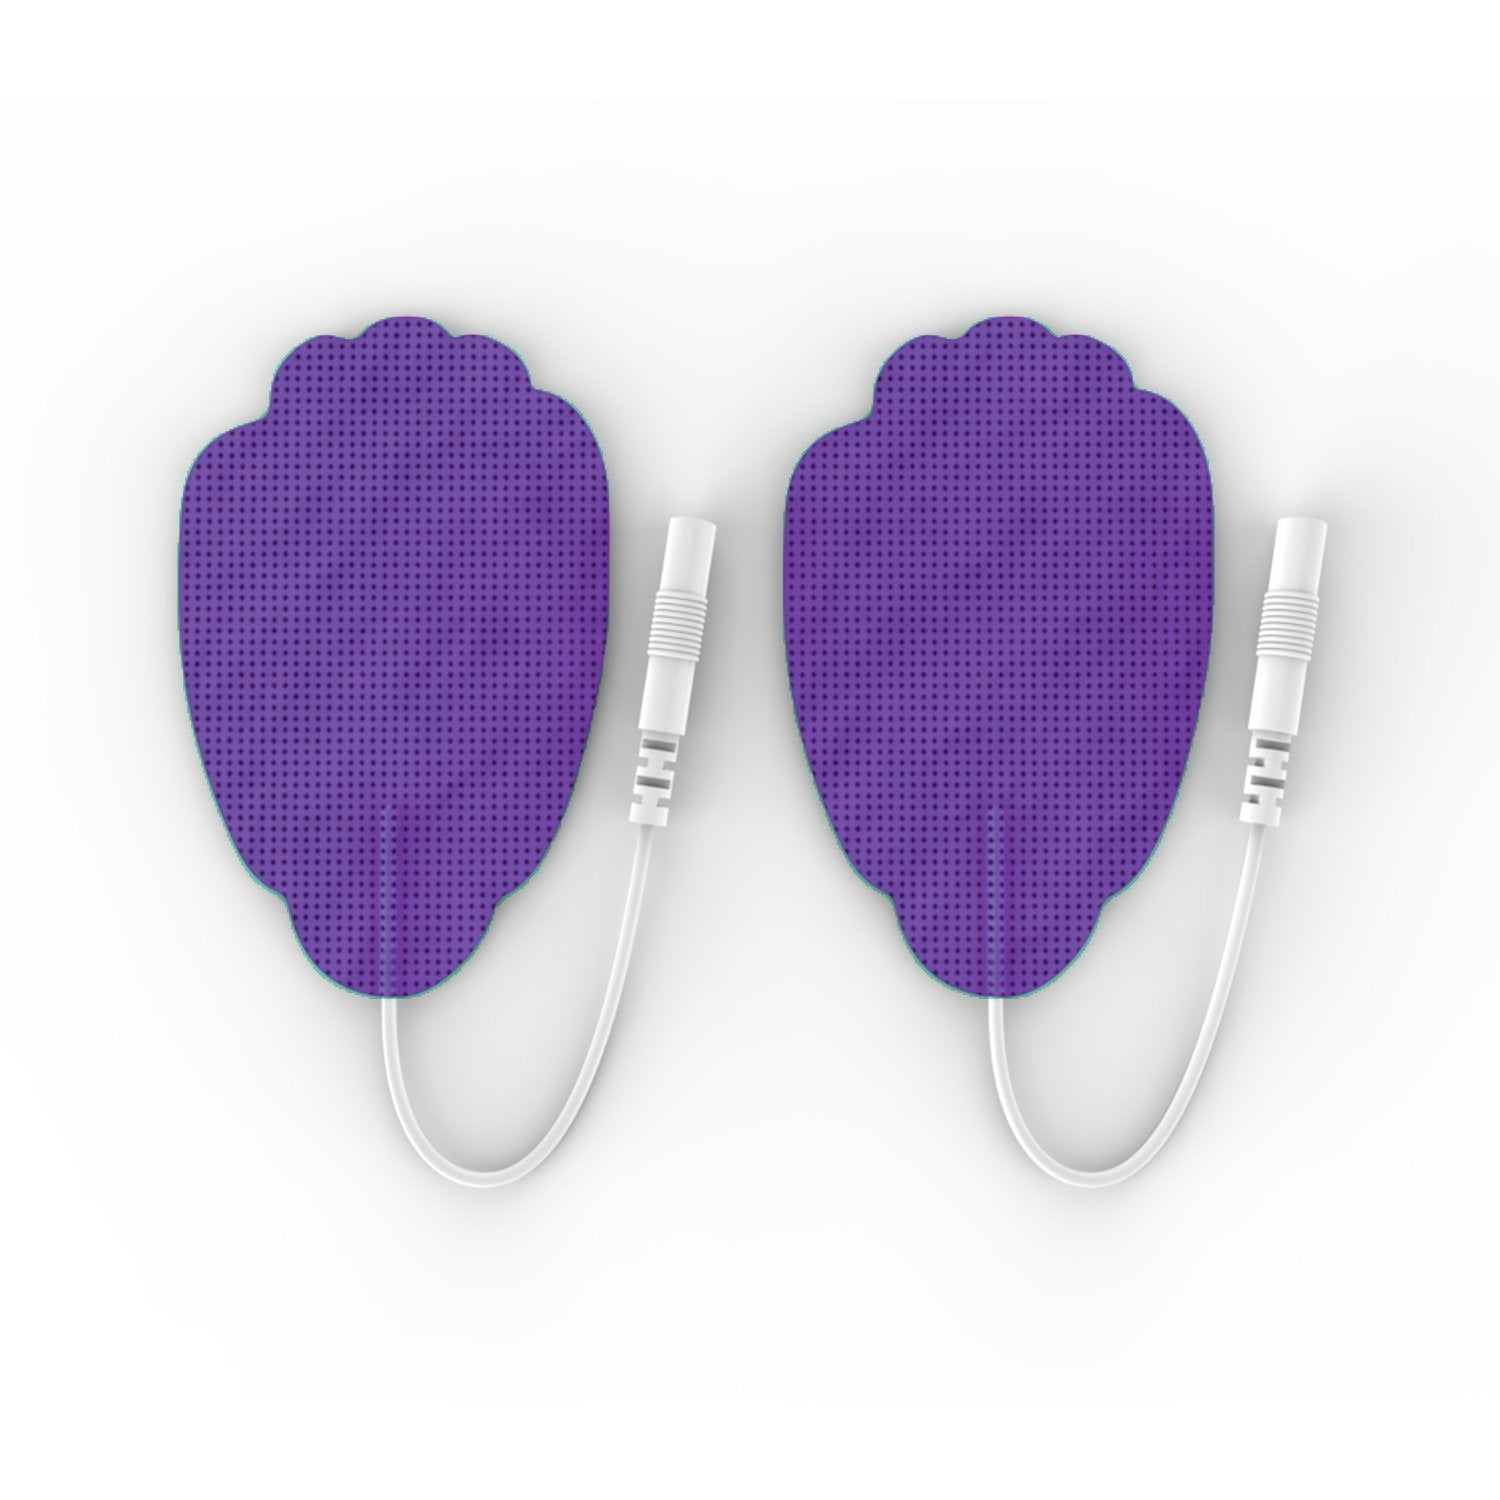 10 Pairs (20 Pcs) Purple Pin-Insert Large Hand-Shaped Electrode Patches Pads  for YK15AB | YK15RC | CT15AB | ZT15AB +CT60AB | ZT60AB Pain Relief TENS Machines Muscle Stimulators - HealthmateForever.com